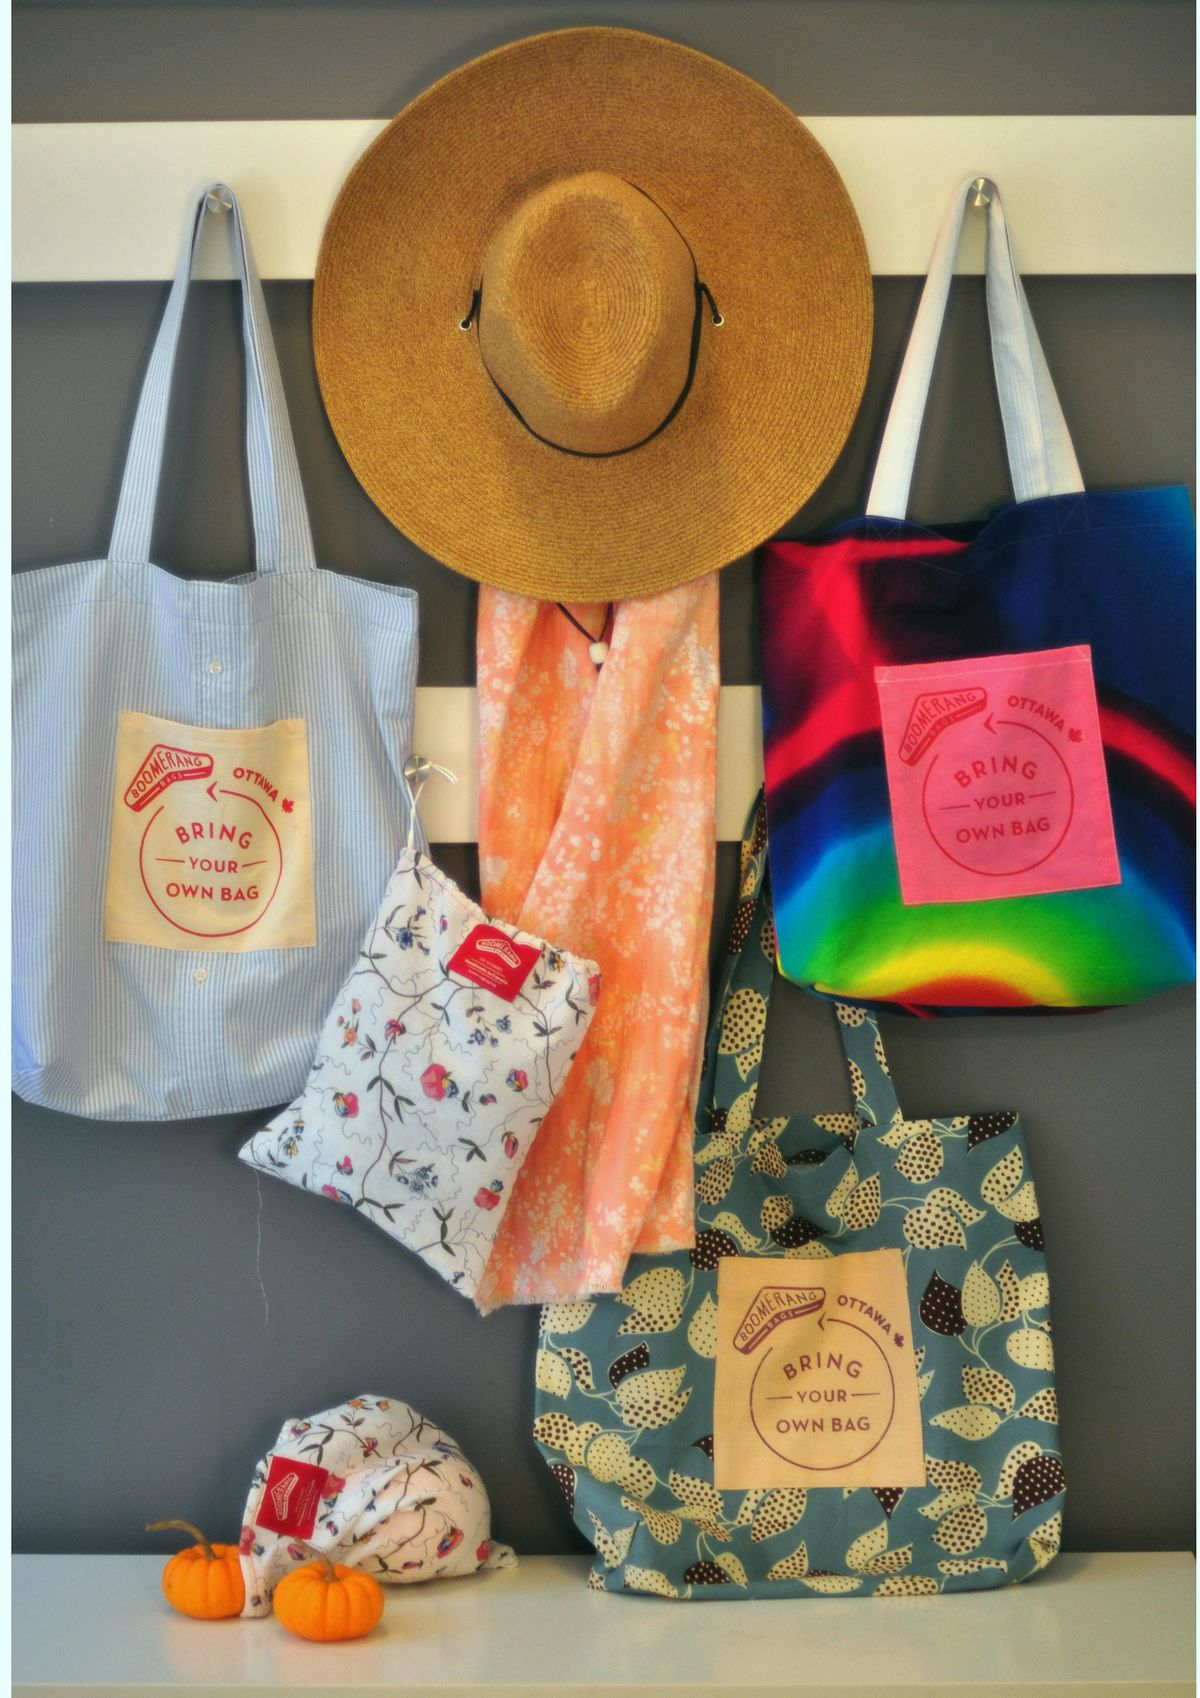 Make Your Own Shopping Bag from Recycled Fabric